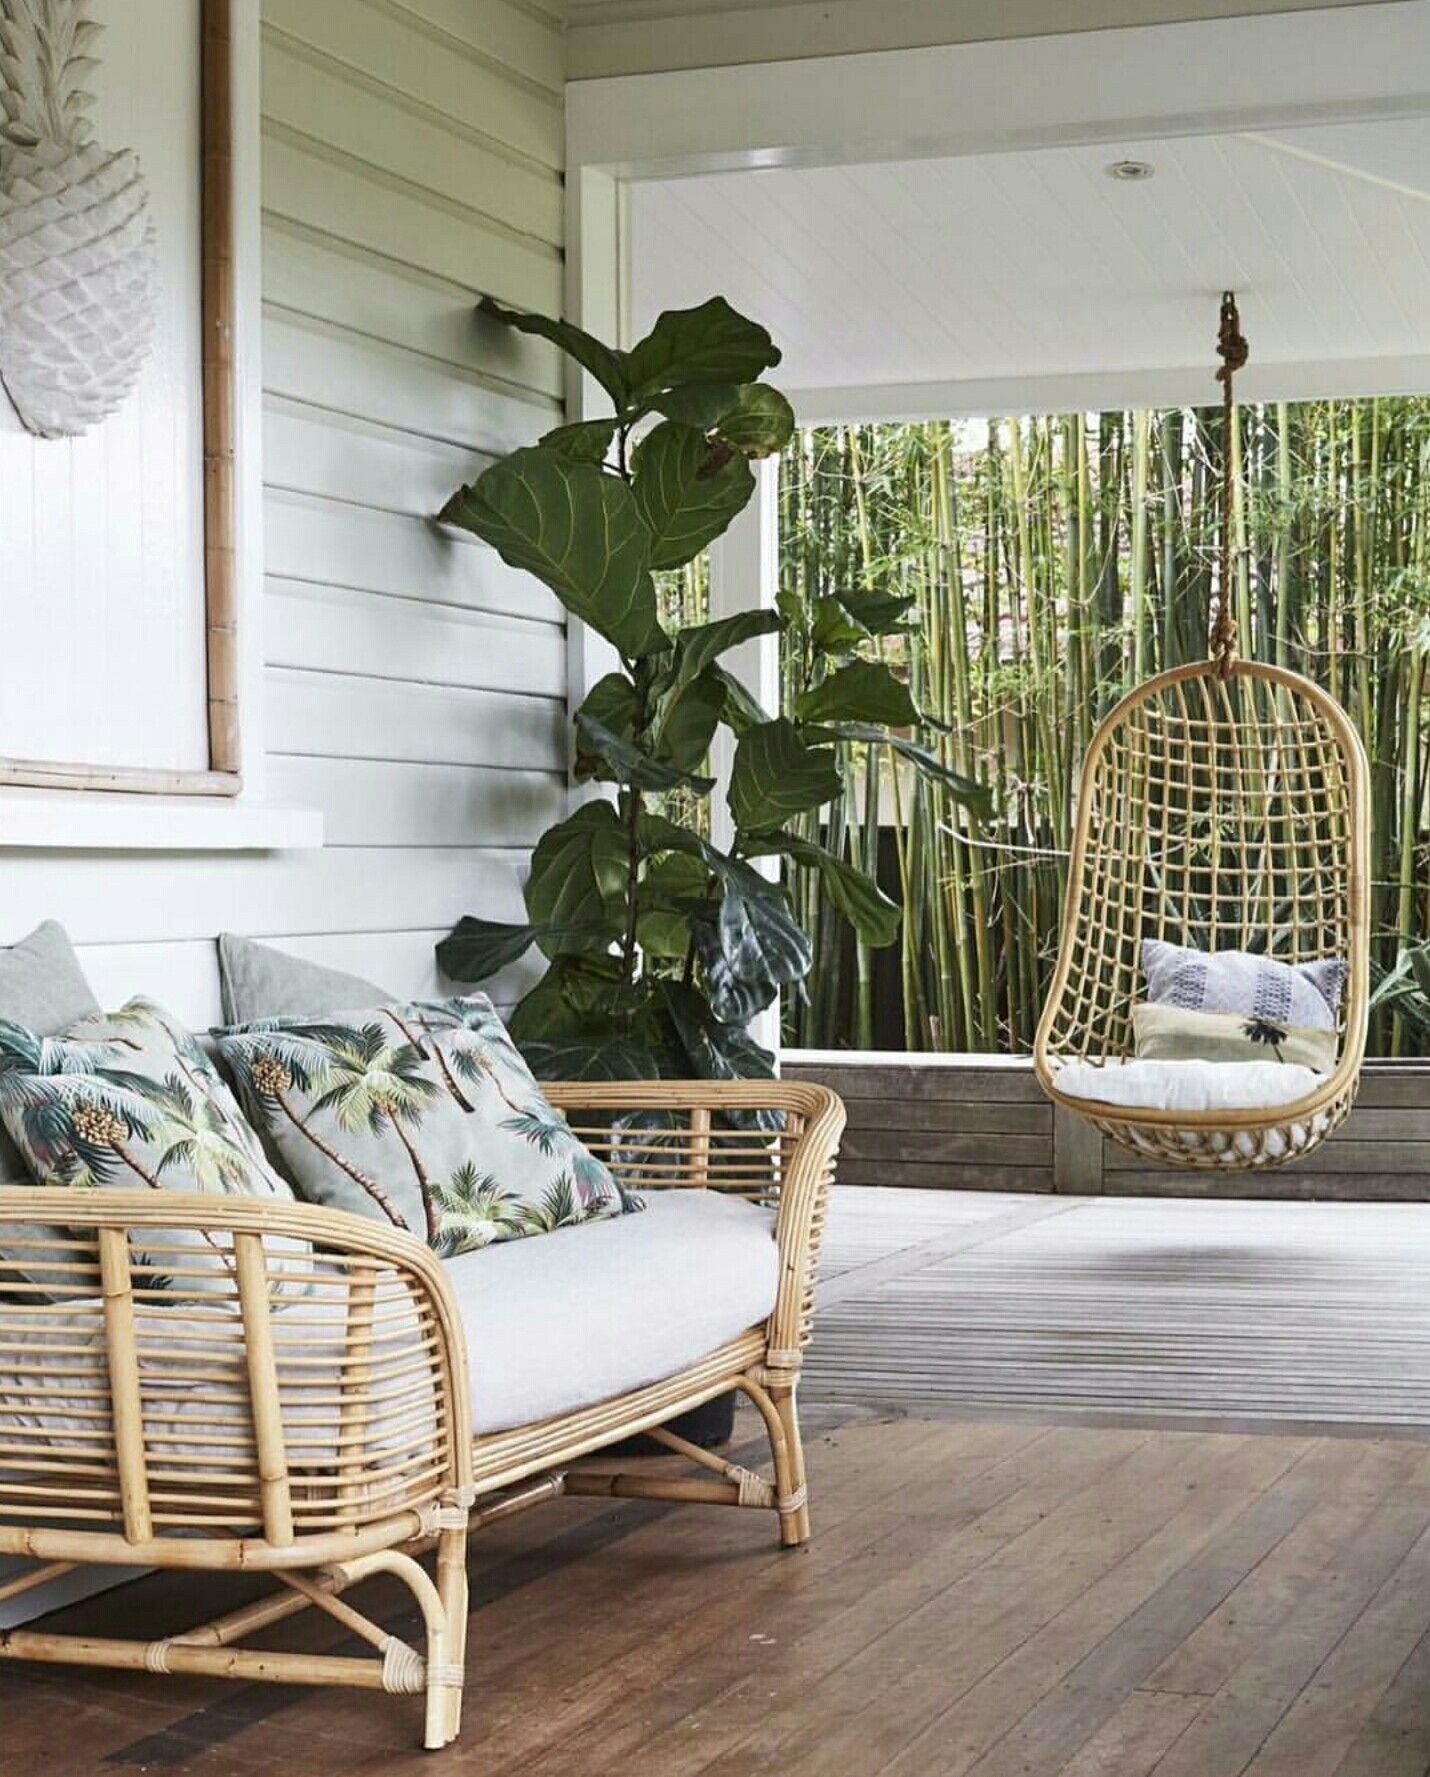 outside/inside spaces and clapboard | P and A | Pinterest ...